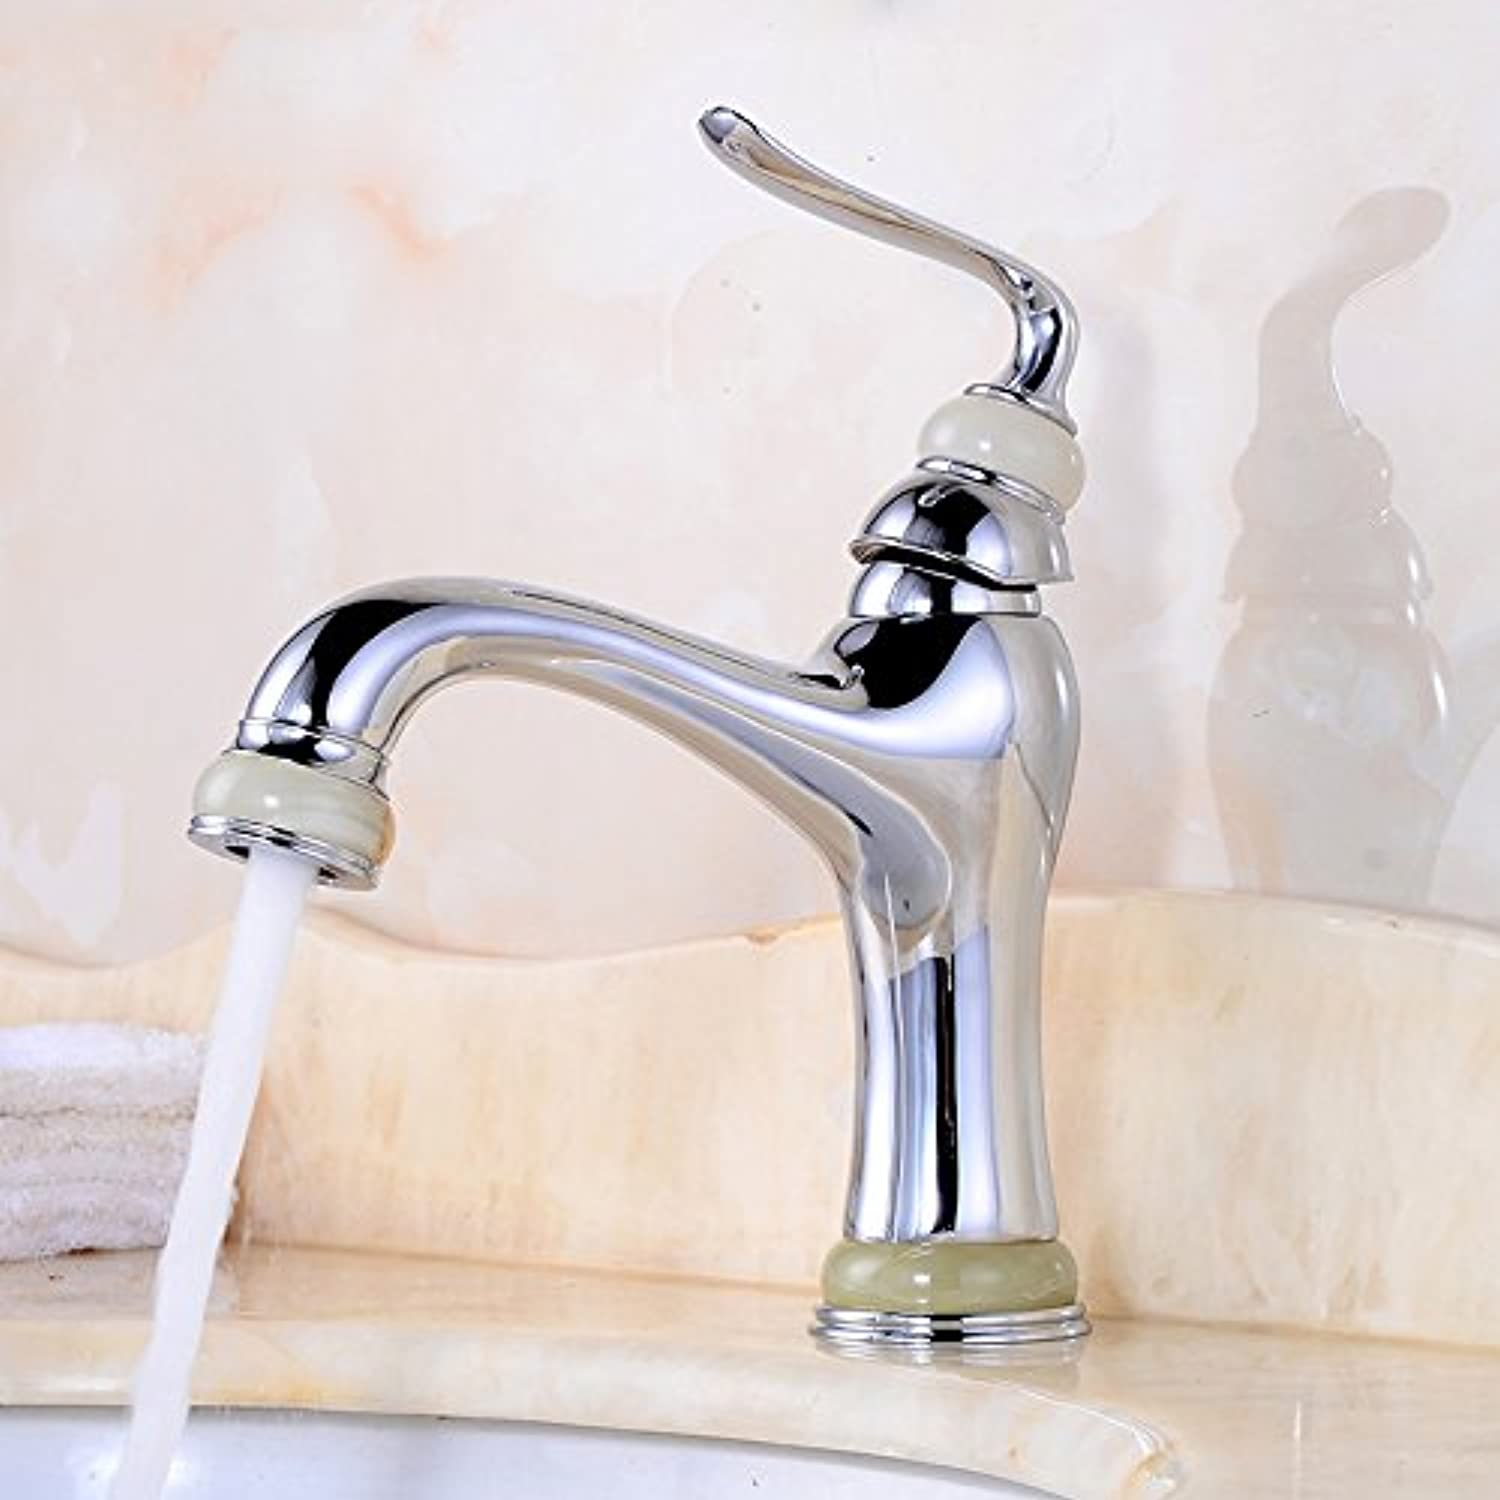 Gyps Faucet Single Lever Washbasin Mixer Tap All Copper Antique Antique Bathroom Console Basin Single Handle Single Hole Jade Solid Brass Faucet Warm